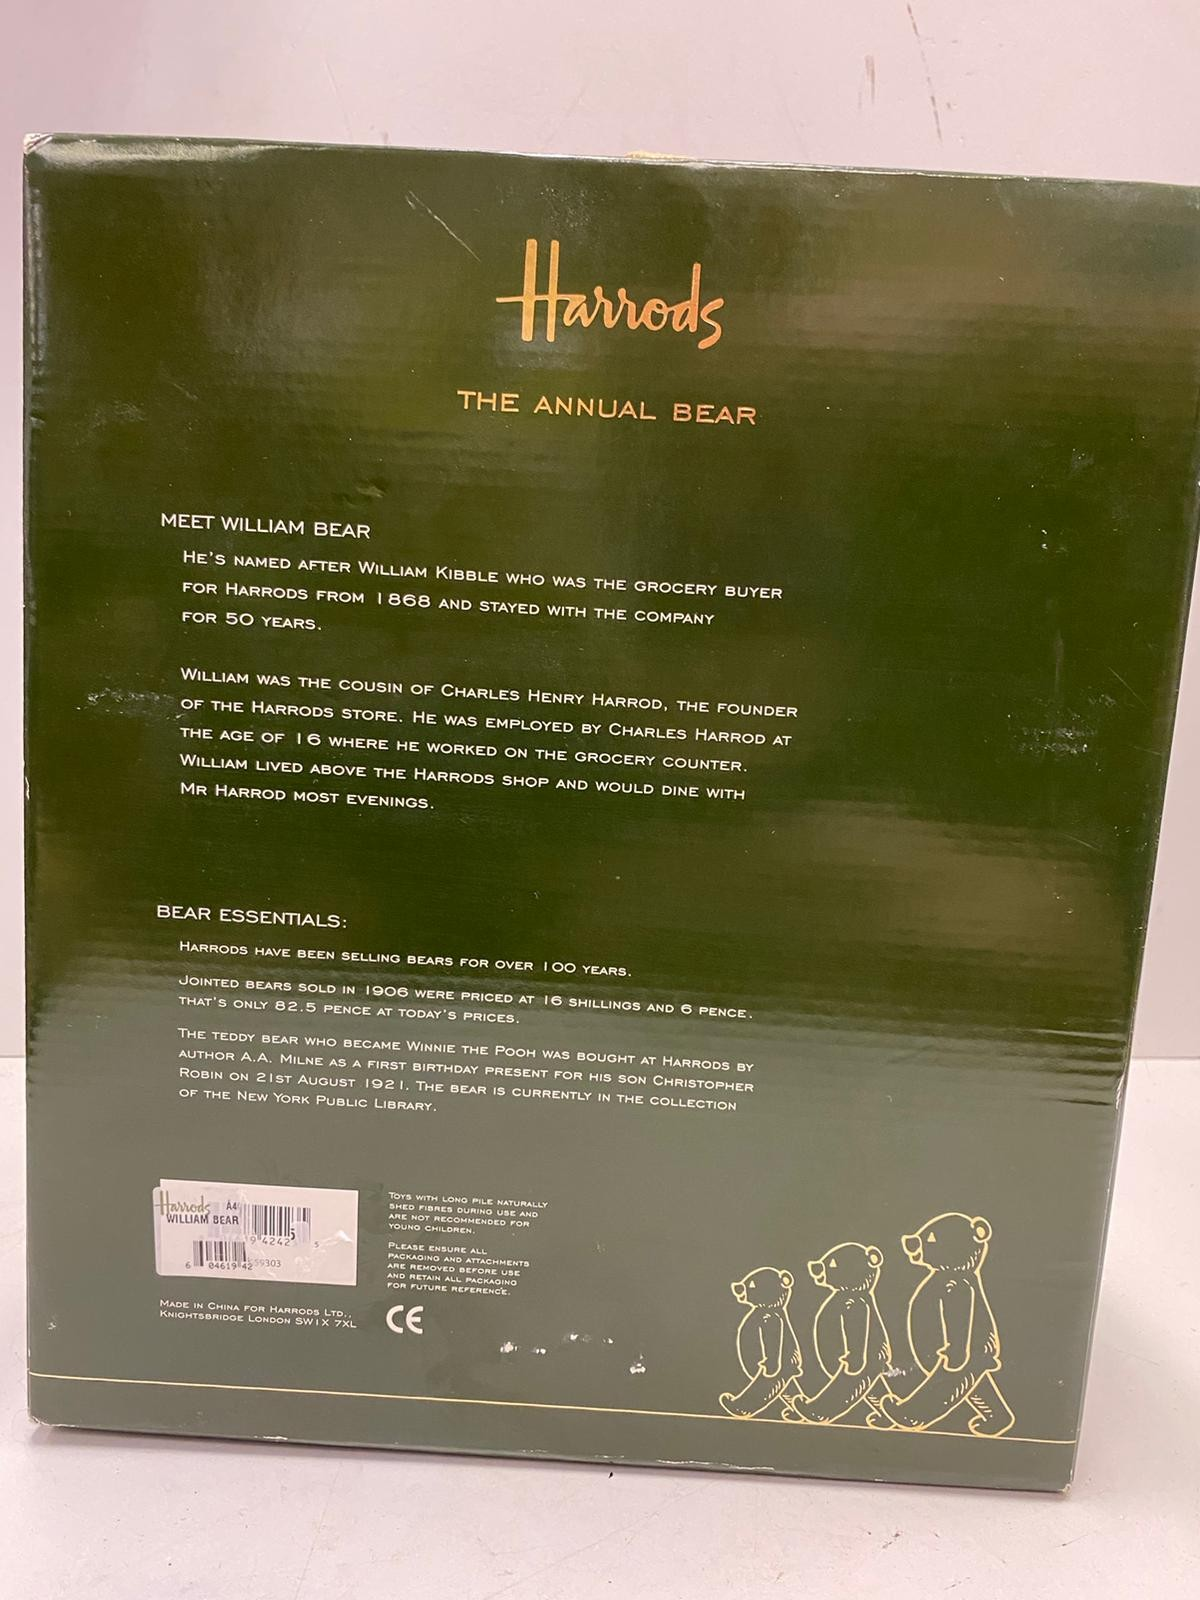 Harrods 2009 annual bear. Whose name is William. Still in original box. 50cm in height approx. - Image 3 of 3